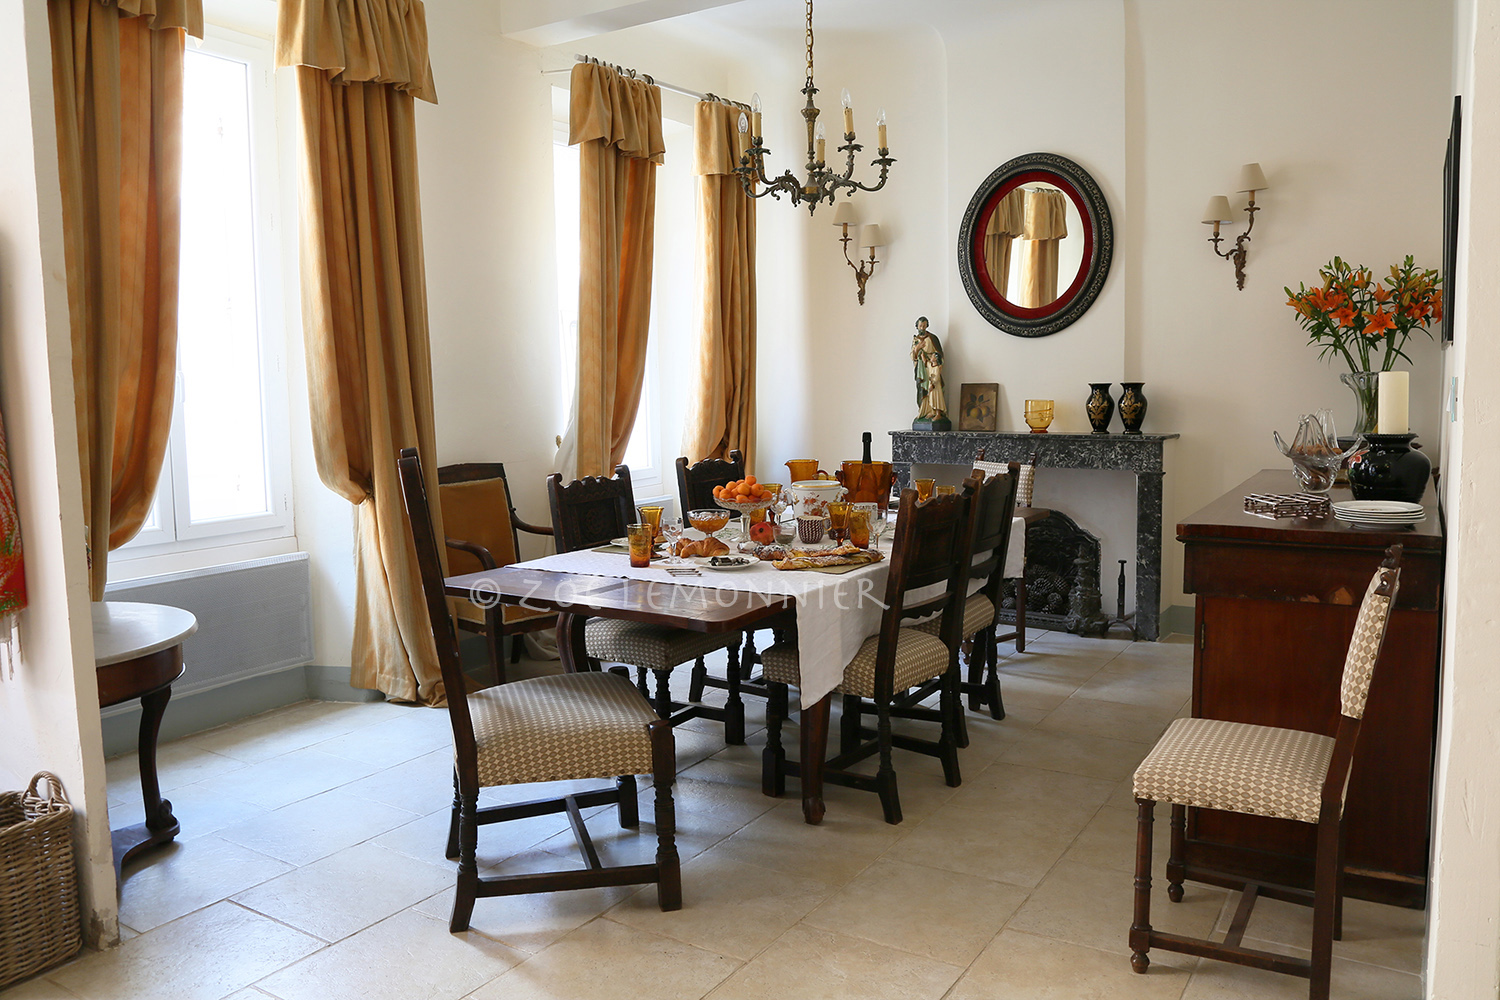 dining room copie.jpg